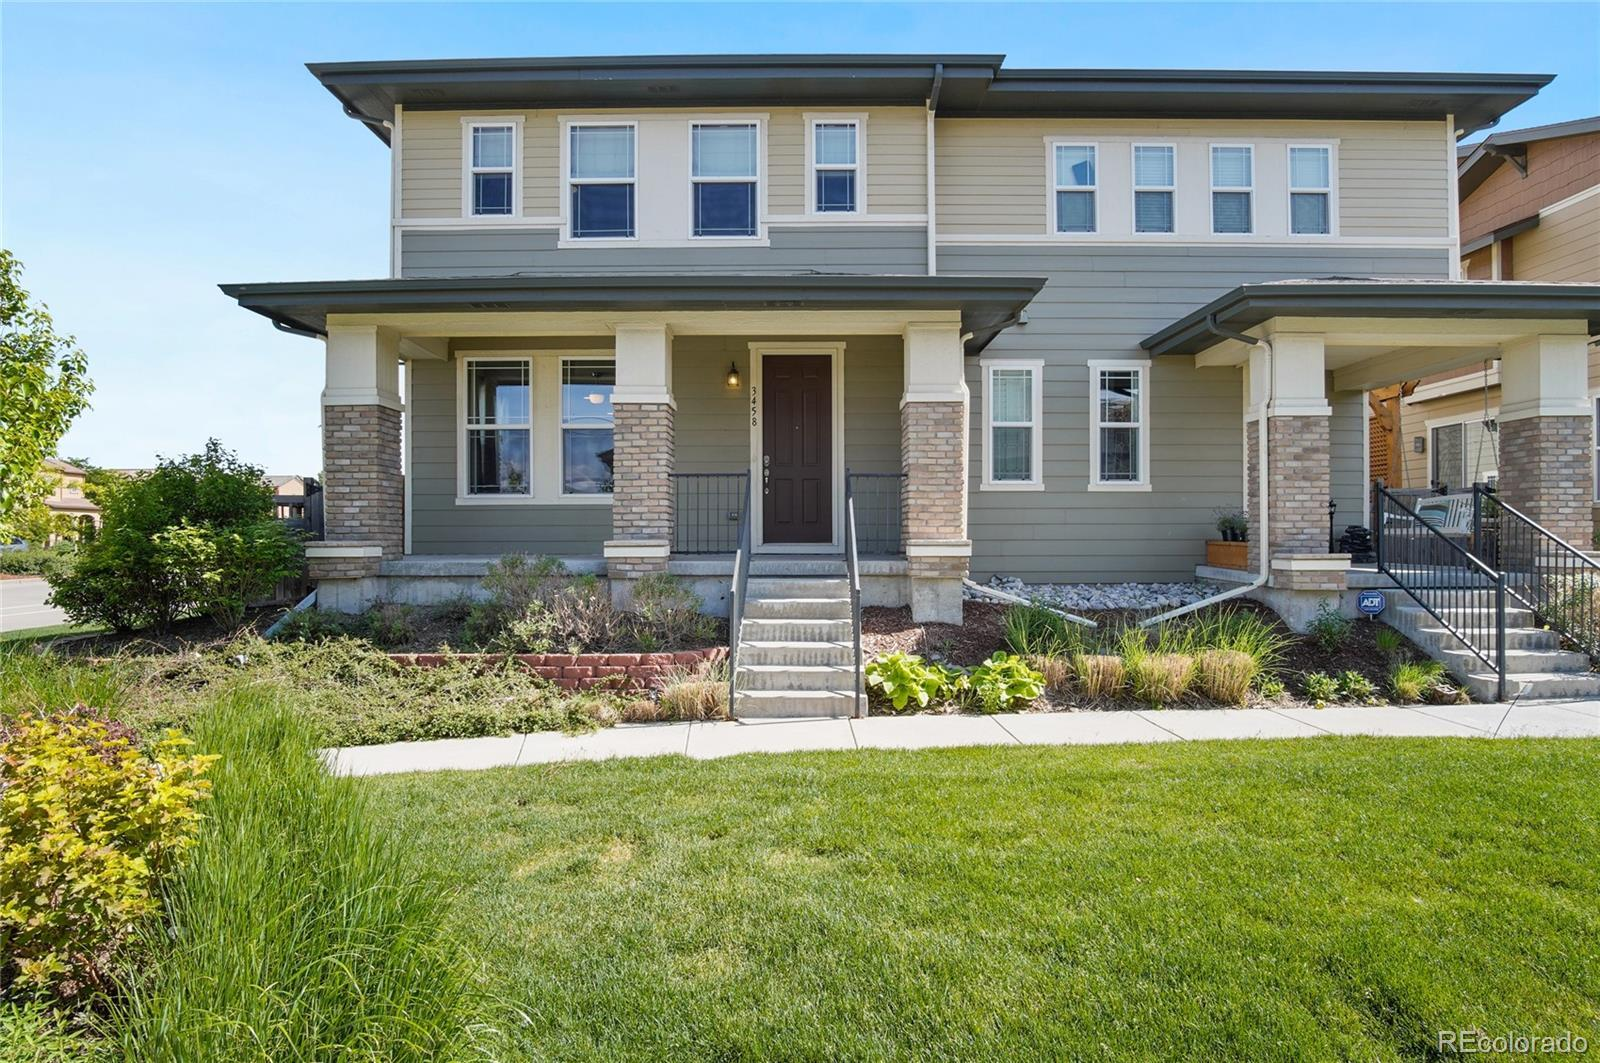 3458 Valentia Street, Denver, CO 80238 - #: 3258398